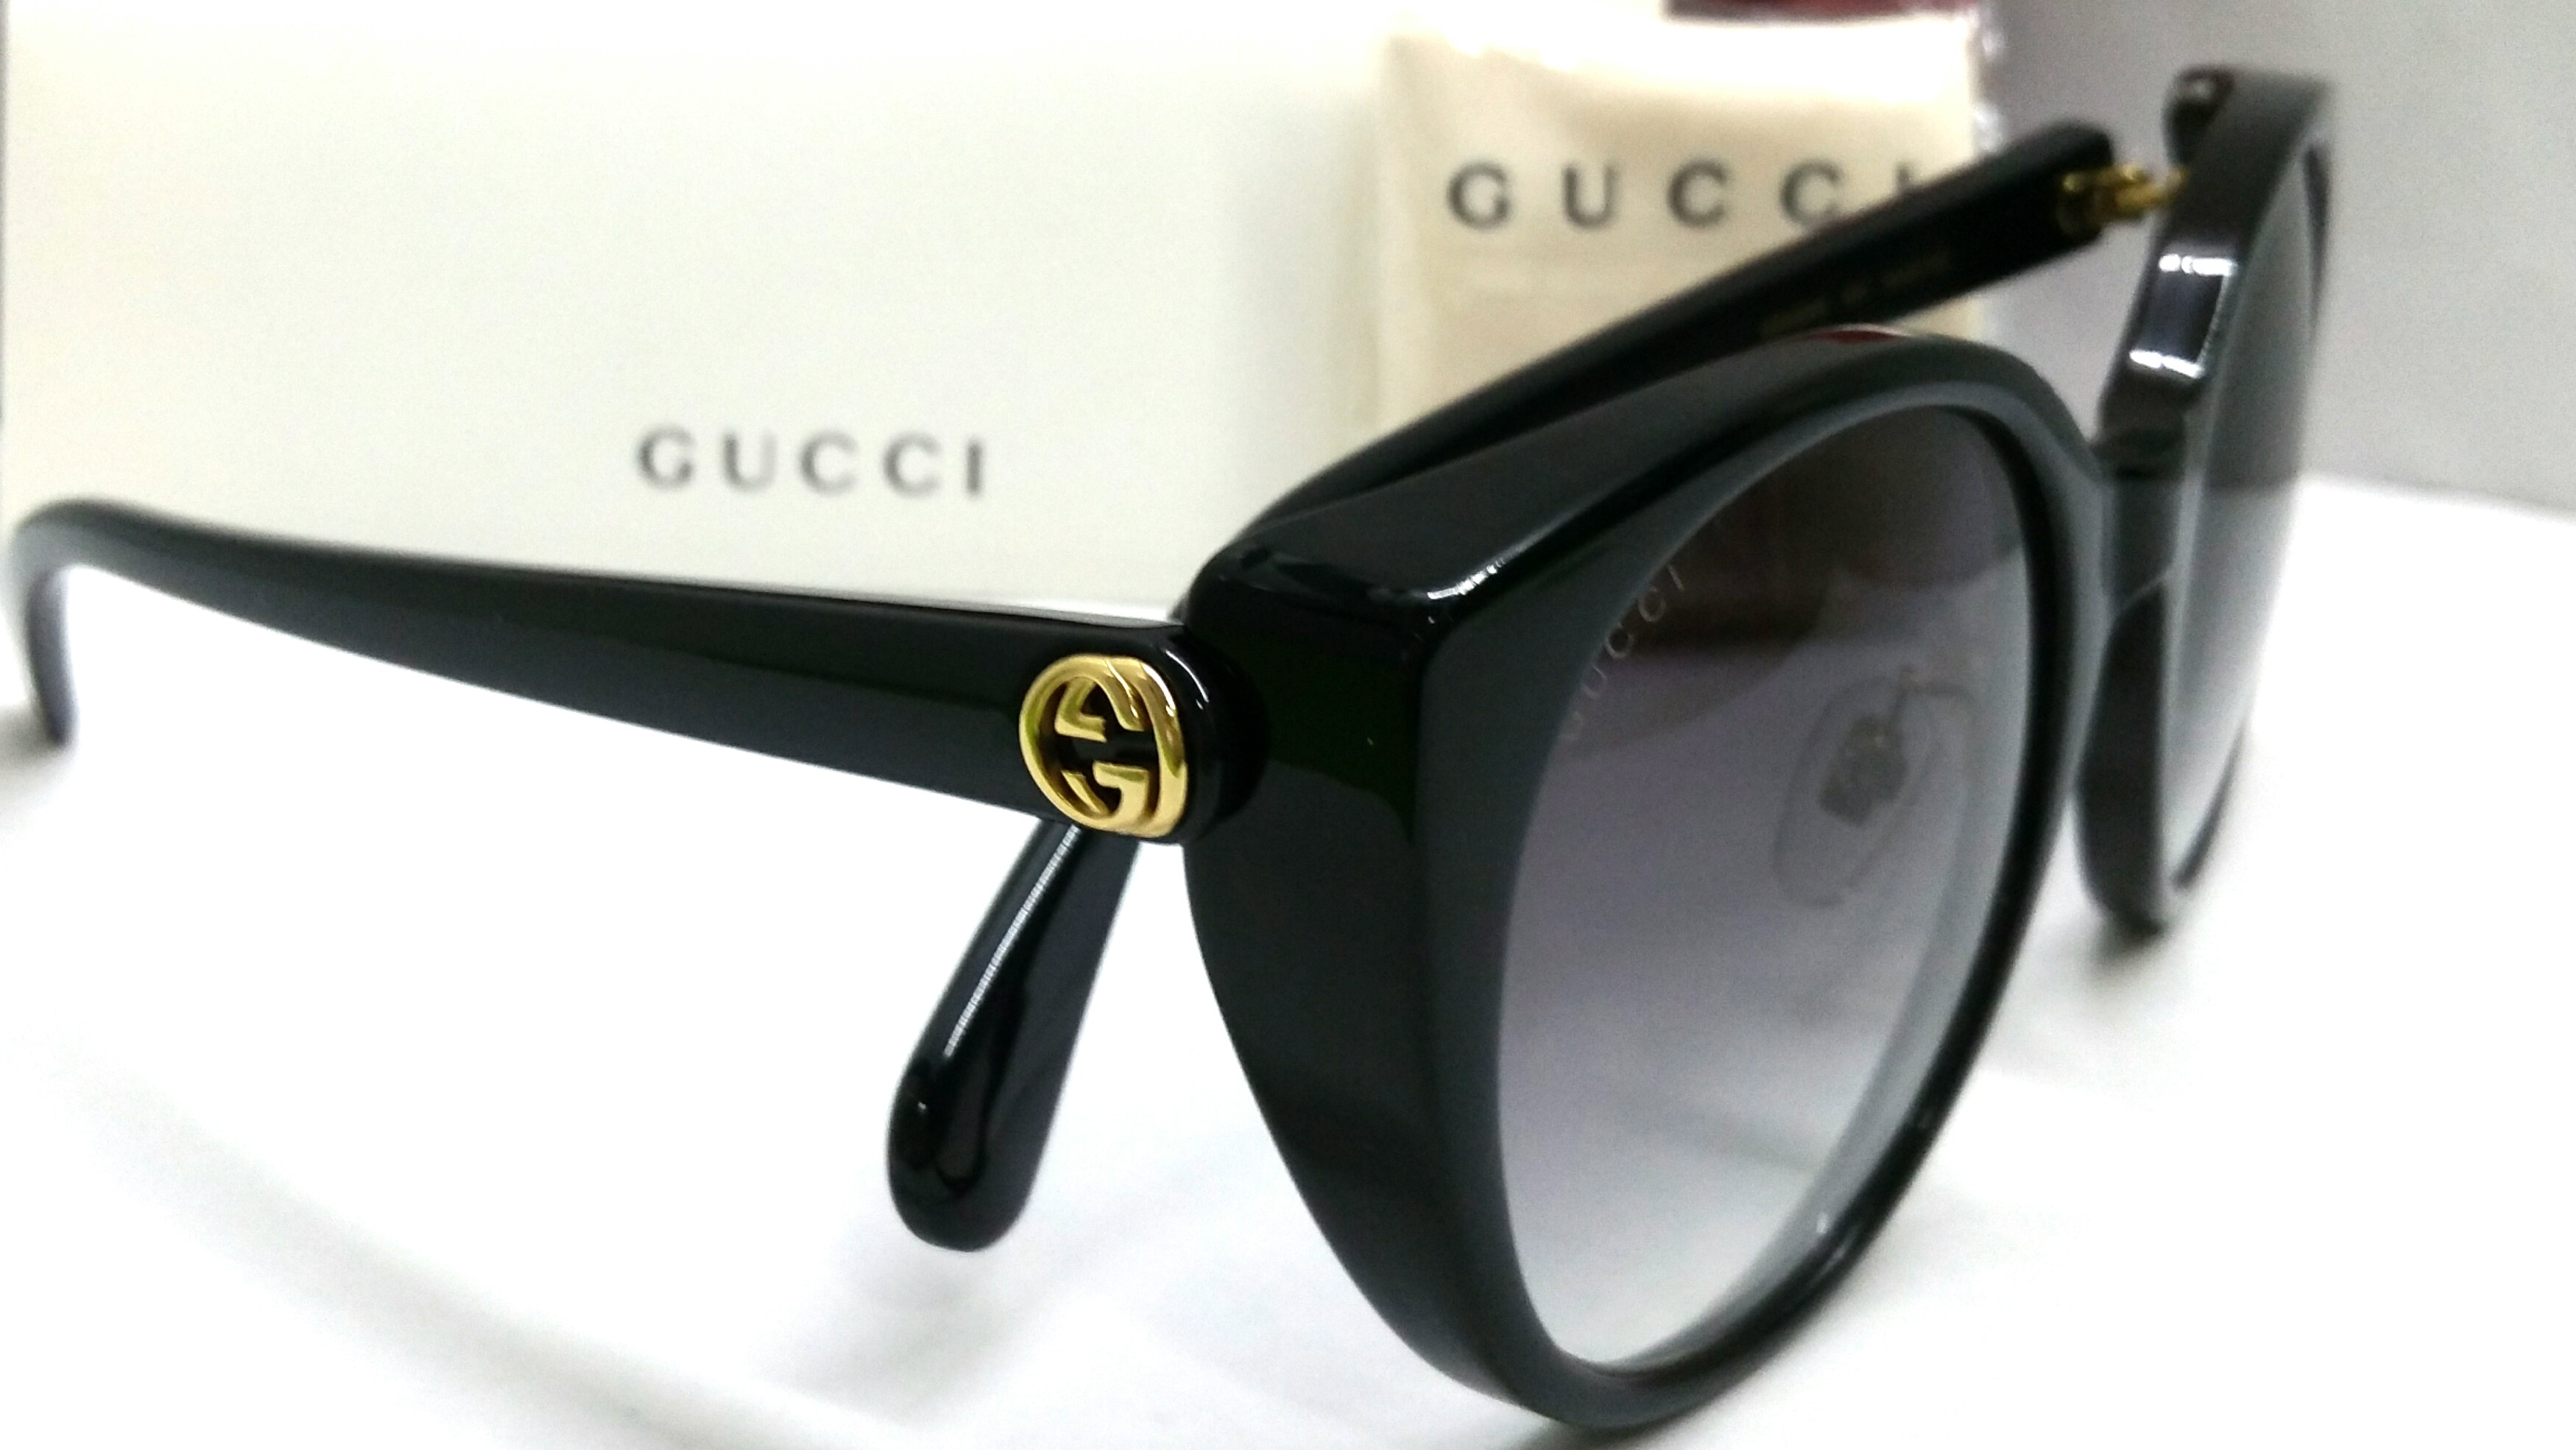 ead49b522c7 Authentic Gucci Sunglasses GG0369S 001 with Individualized serial ...